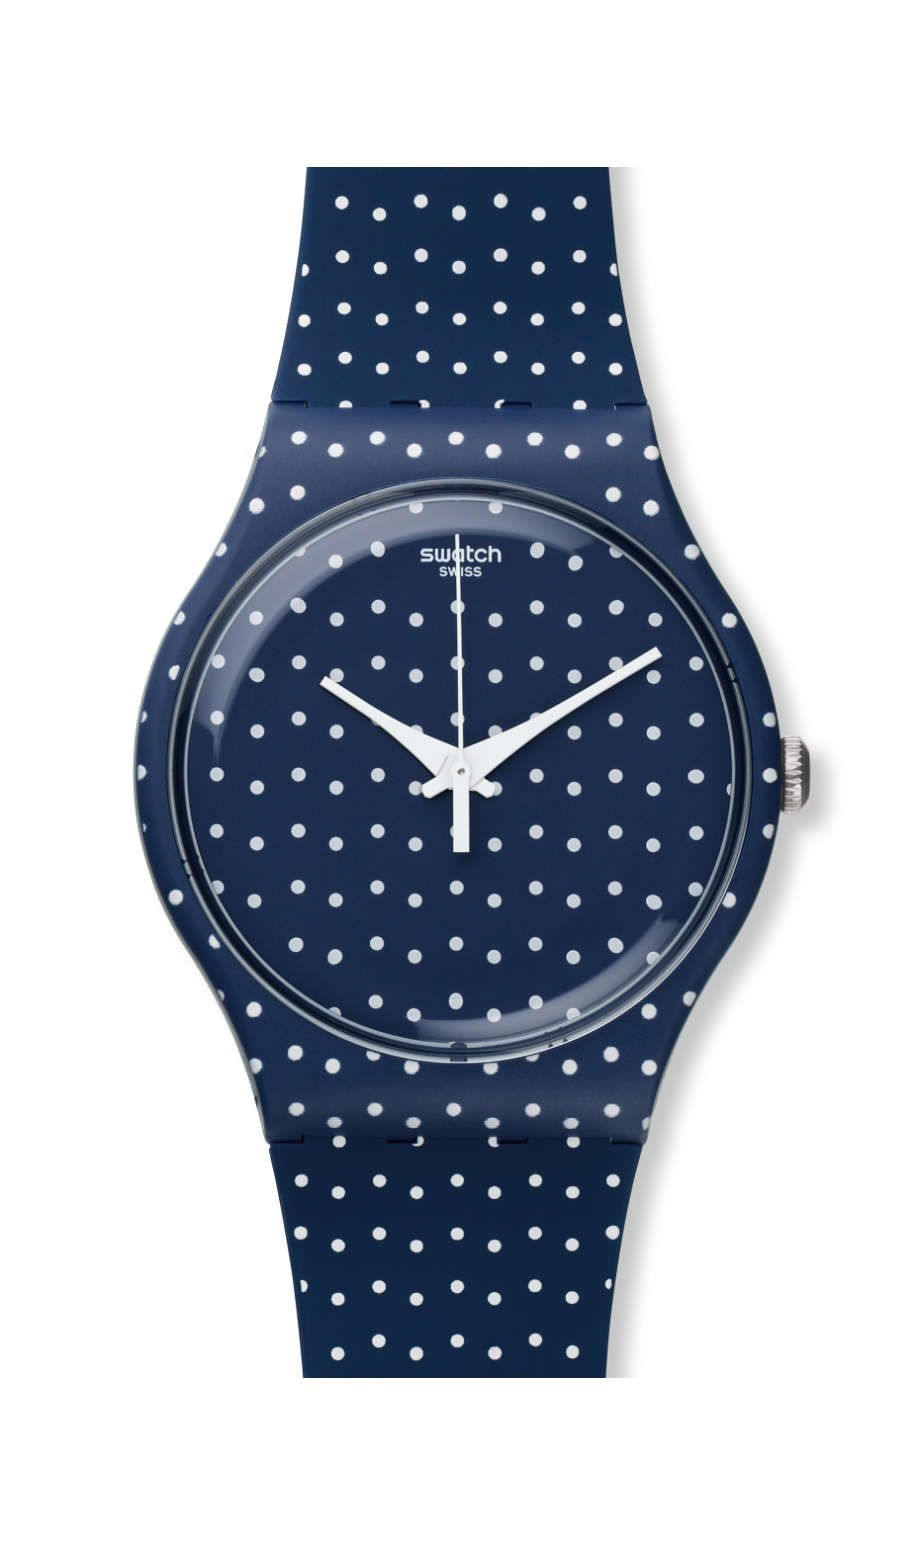 Swatch Uhren Günstig Kaufen Swatch For The Love Of K Beamie Ladies Style In 2019 Swatch